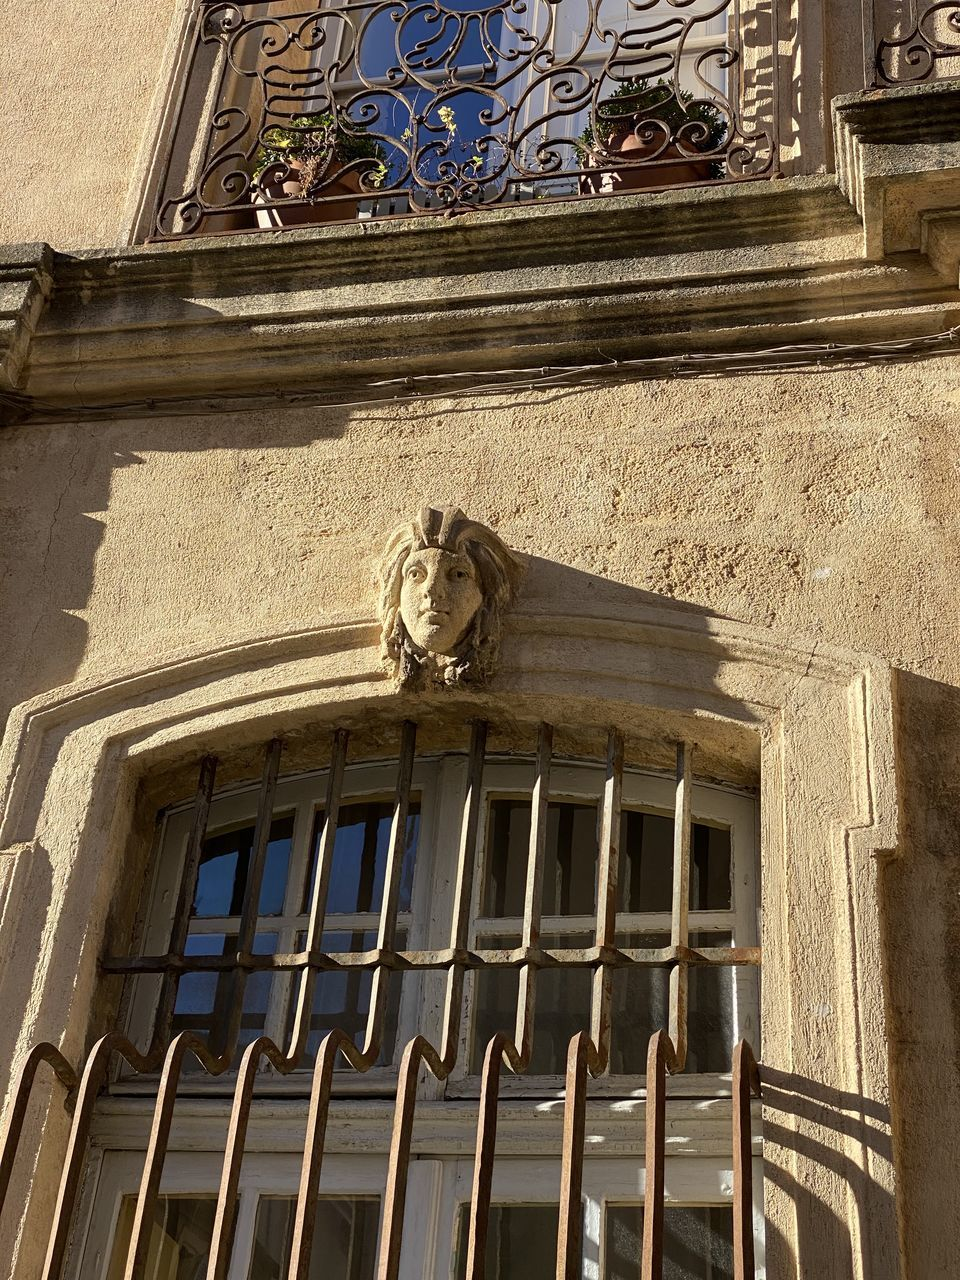 built structure, architecture, building exterior, low angle view, building, window, no people, day, representation, sculpture, history, the past, human representation, statue, old, art and craft, outdoors, male likeness, balcony, wall - building feature, architectural column, ornate